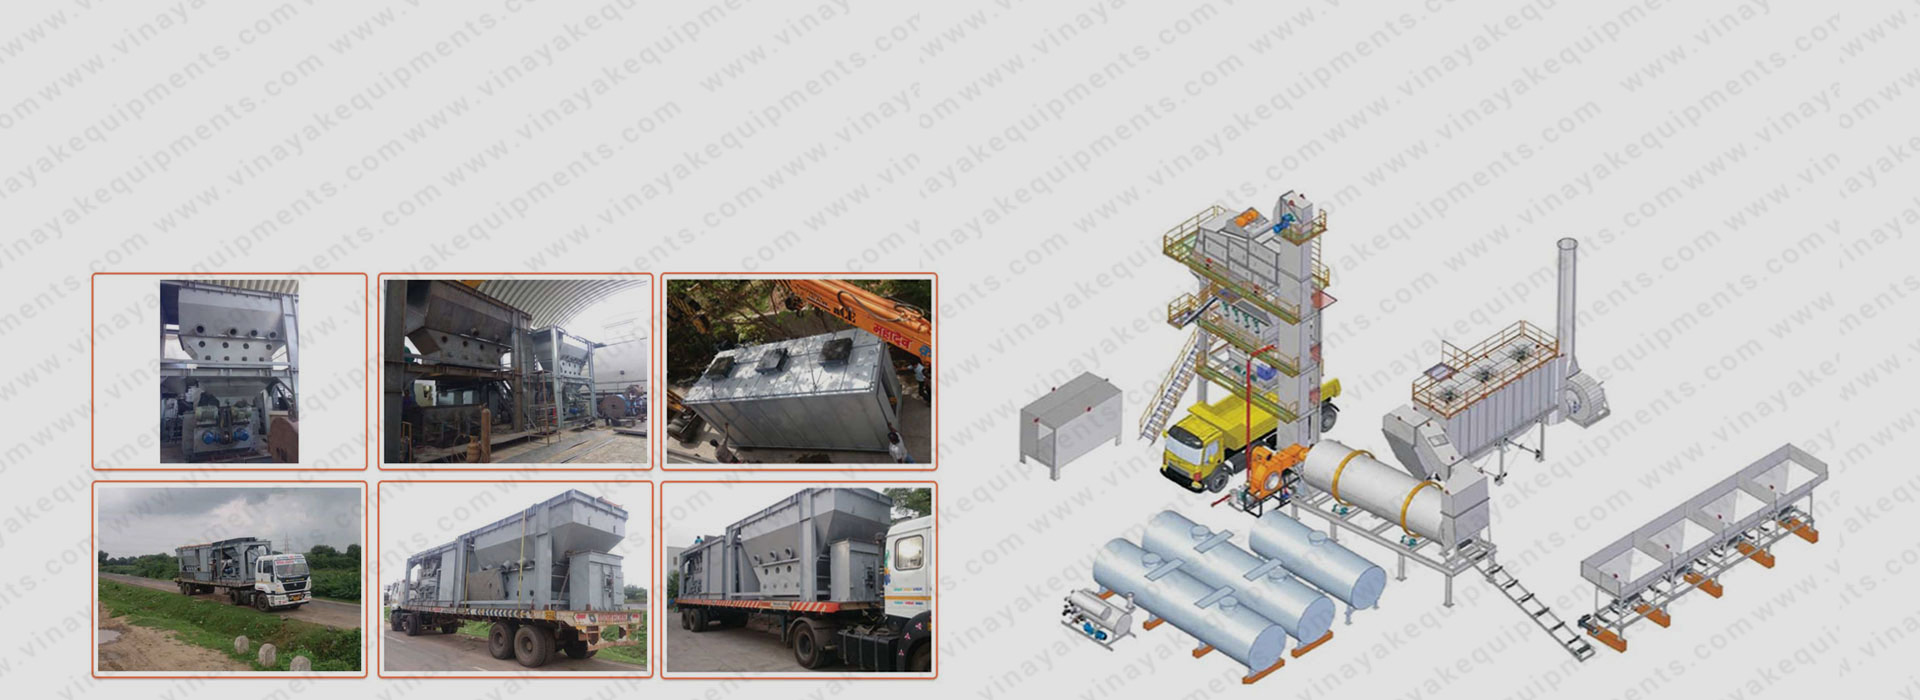 Asphalt Mixing Plant Manufacturers, Suppliers, Dealers